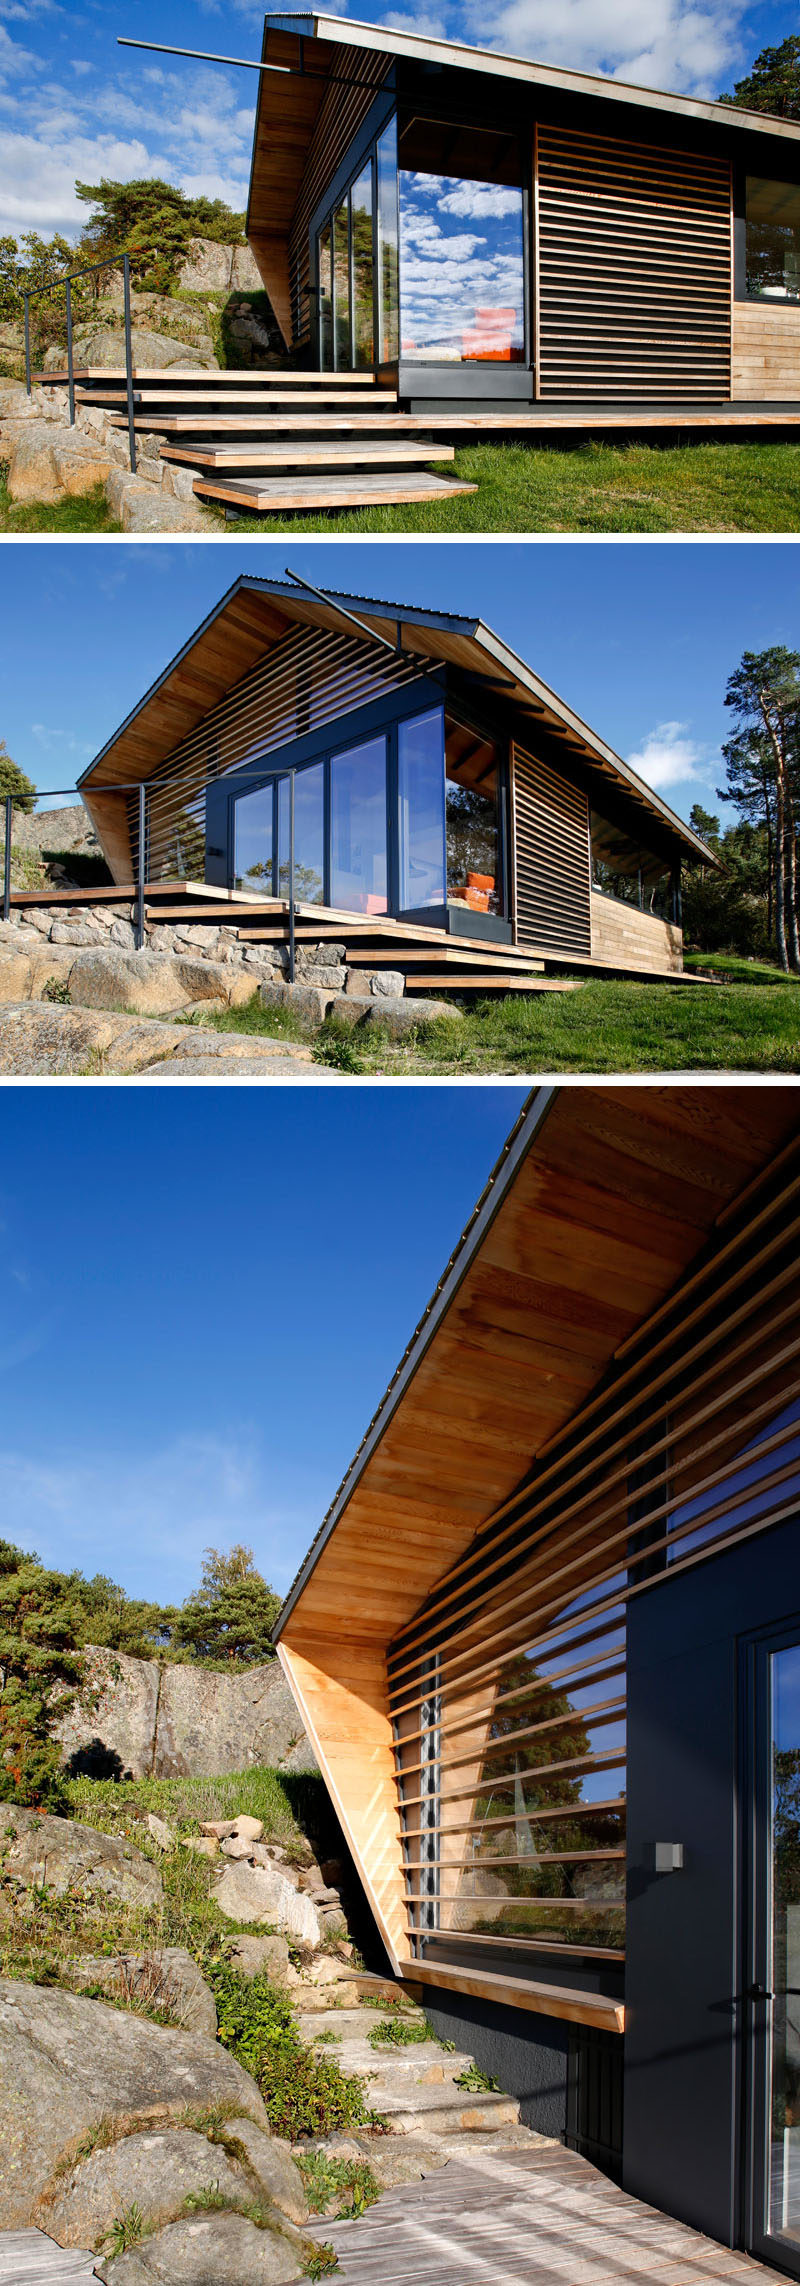 This modern cabin is clad with cedar timber, with some of the wood partially covering the windows, allowing sunlight to filter through to the interior.#ModernCabin #Architecture